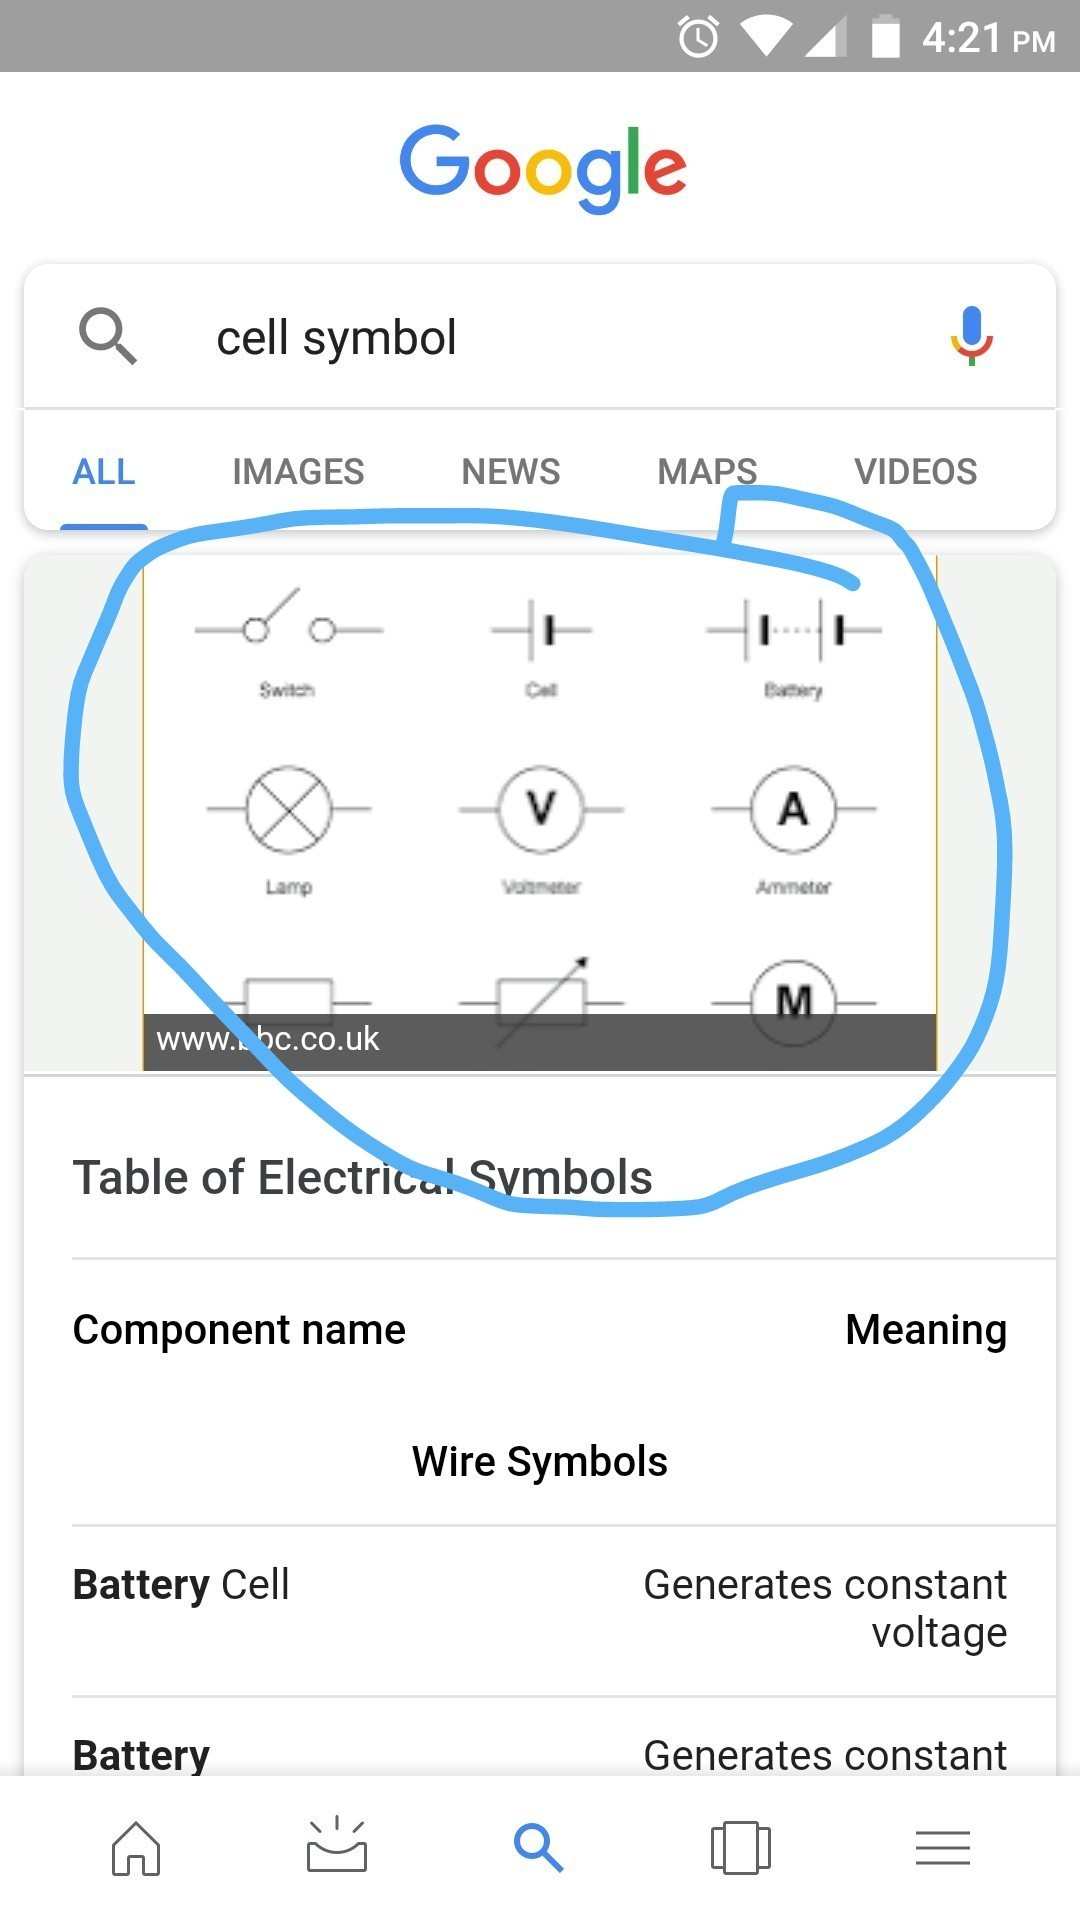 Draw The Symbols Of The Following Electric Components A Cell B